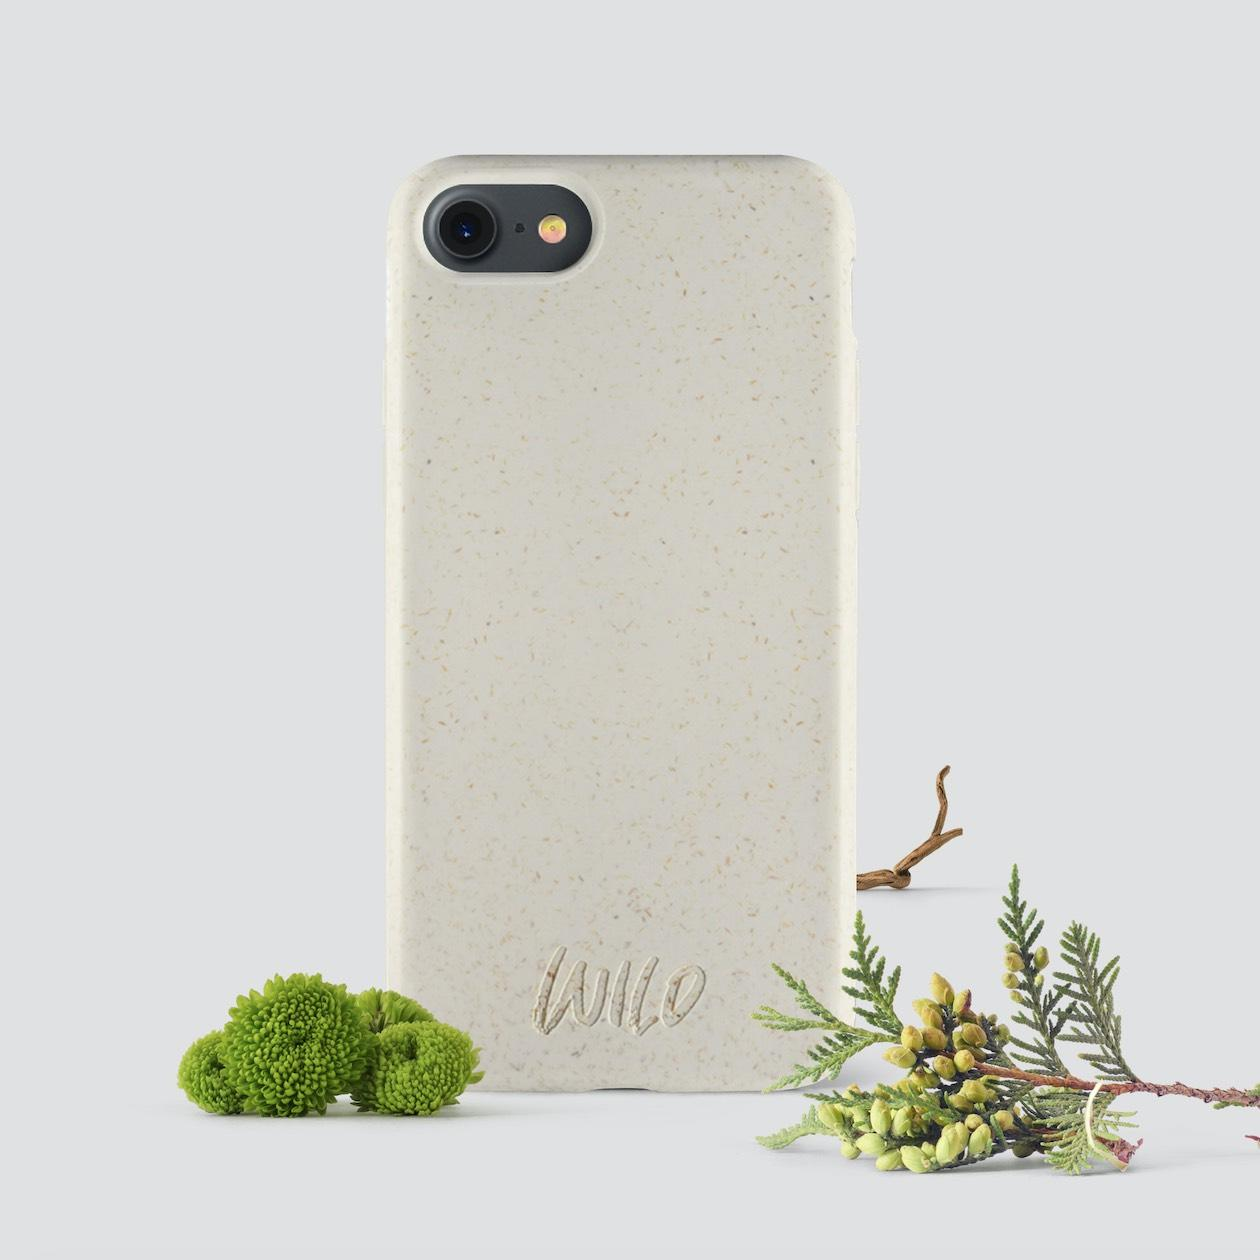 Biodegradable iPhone 7 Case